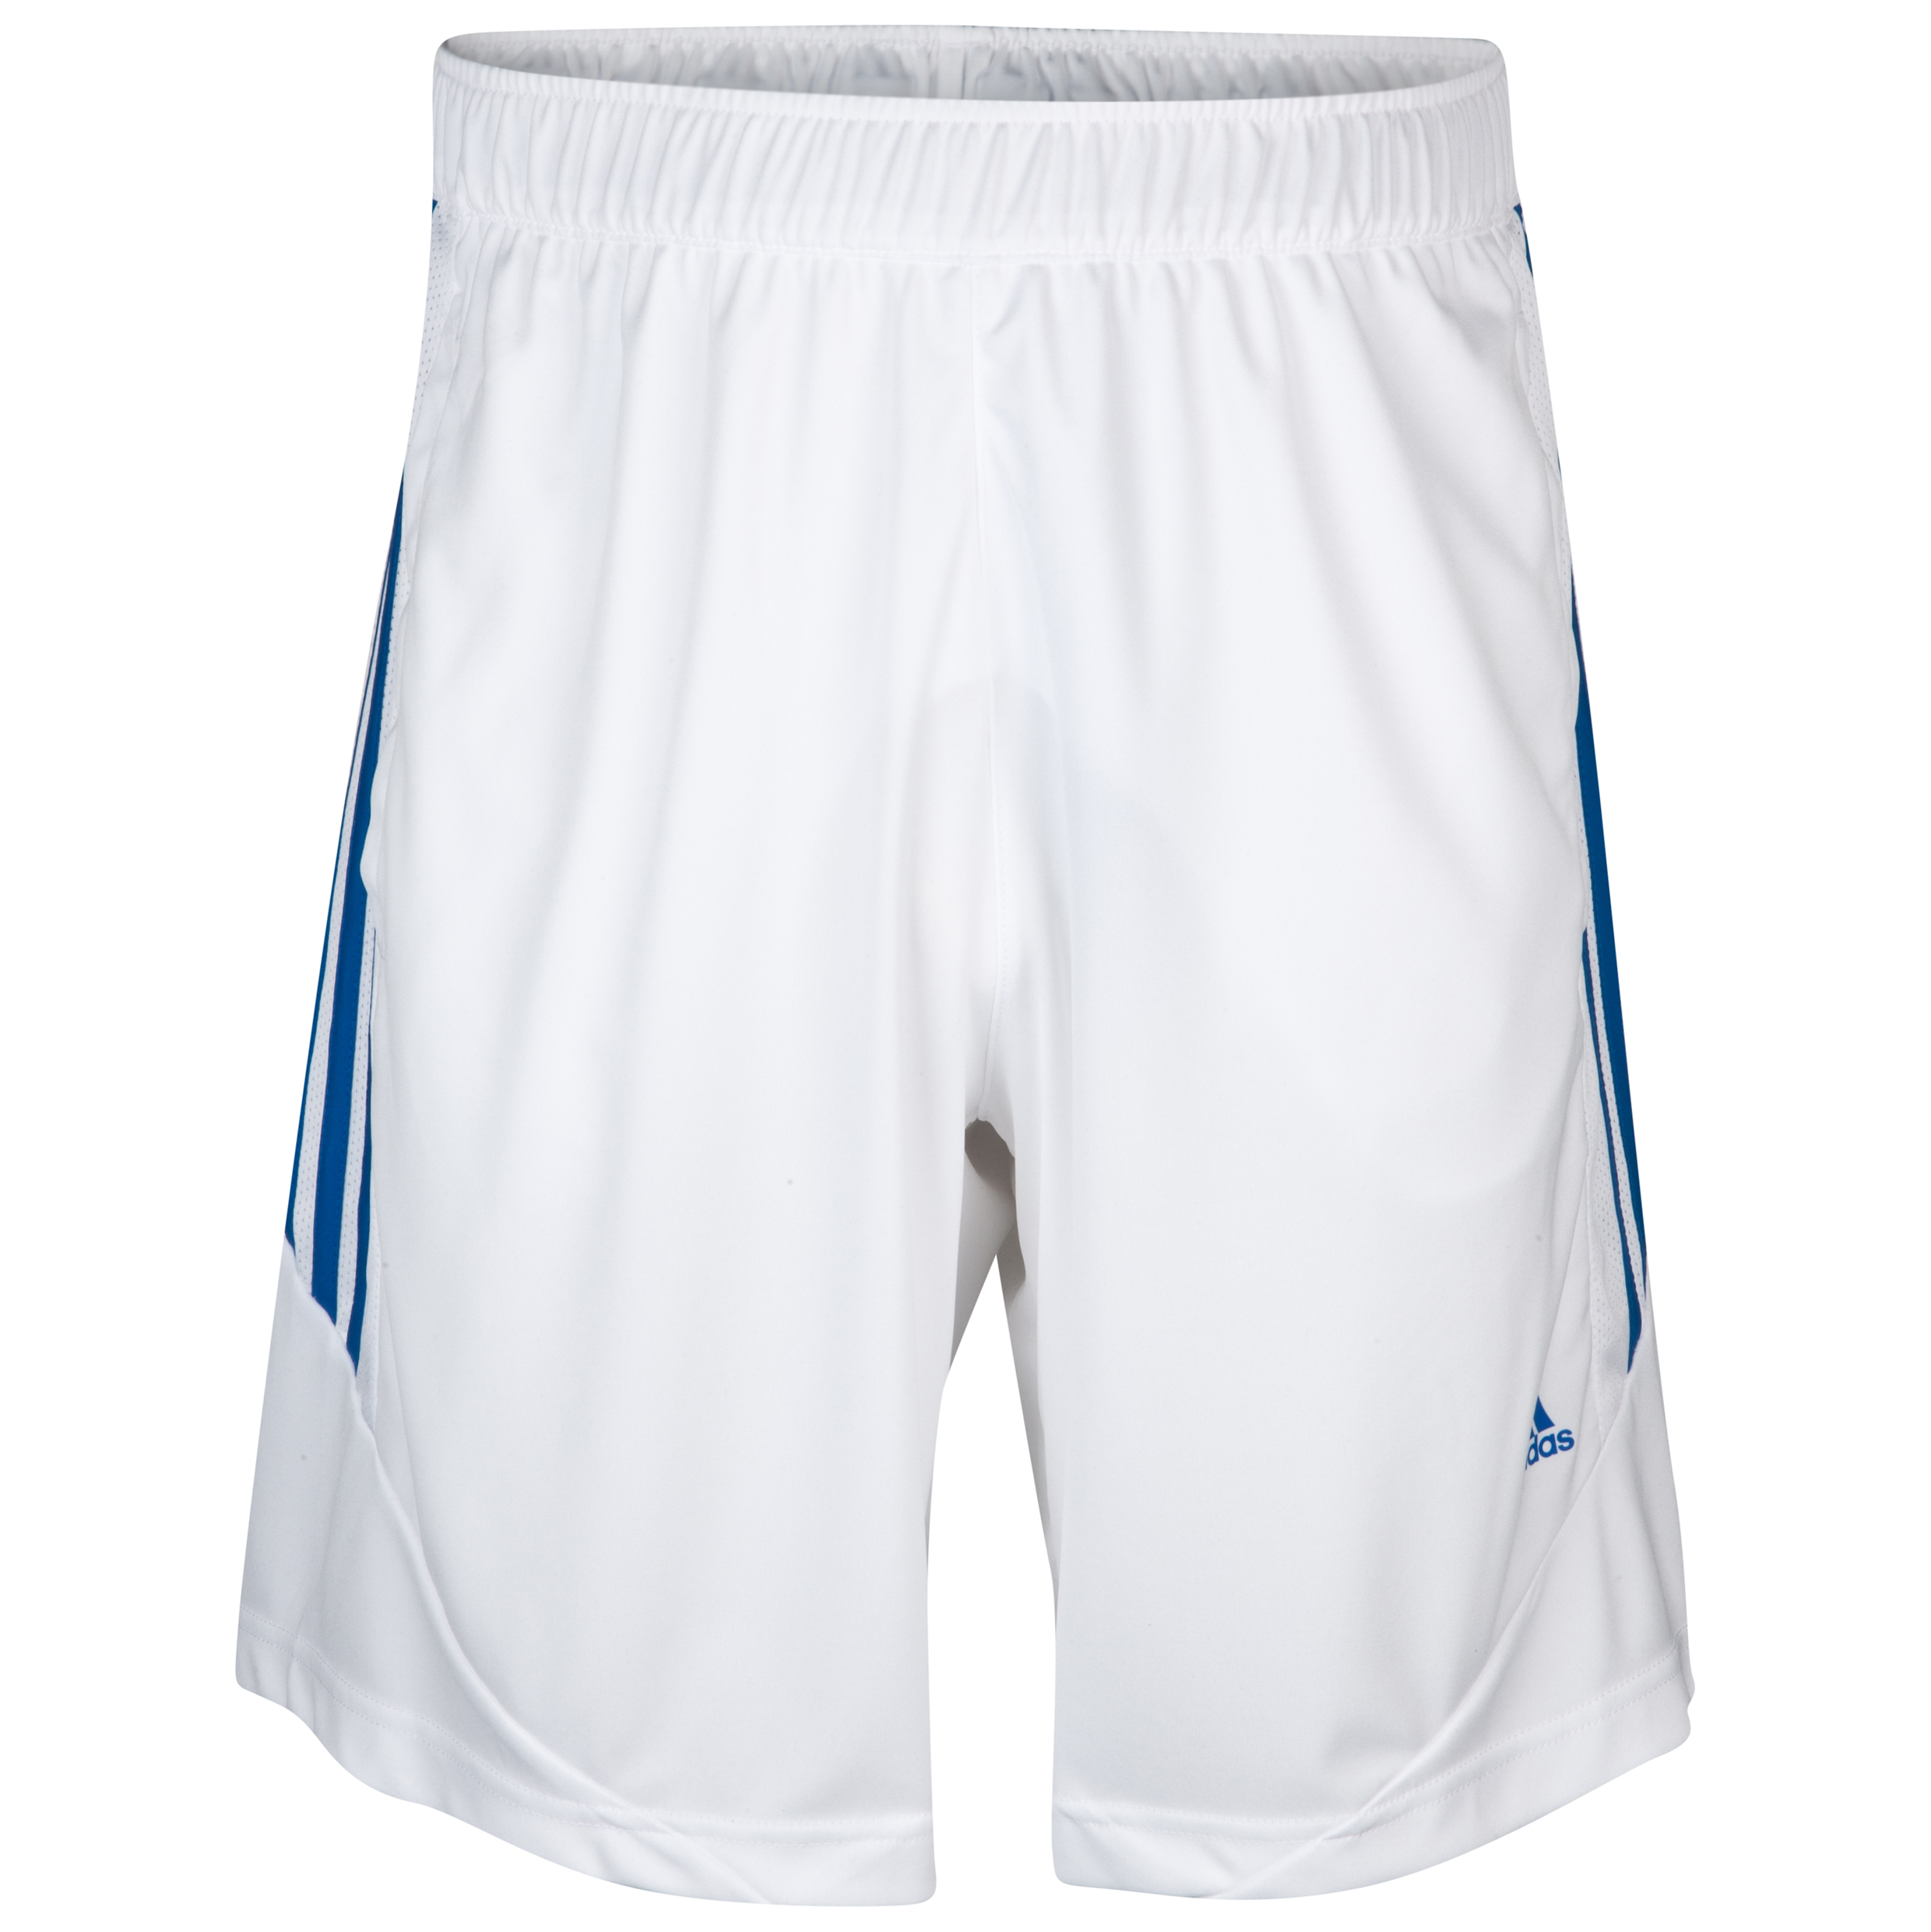 adidas Predator Training Short - White/Prime Blue